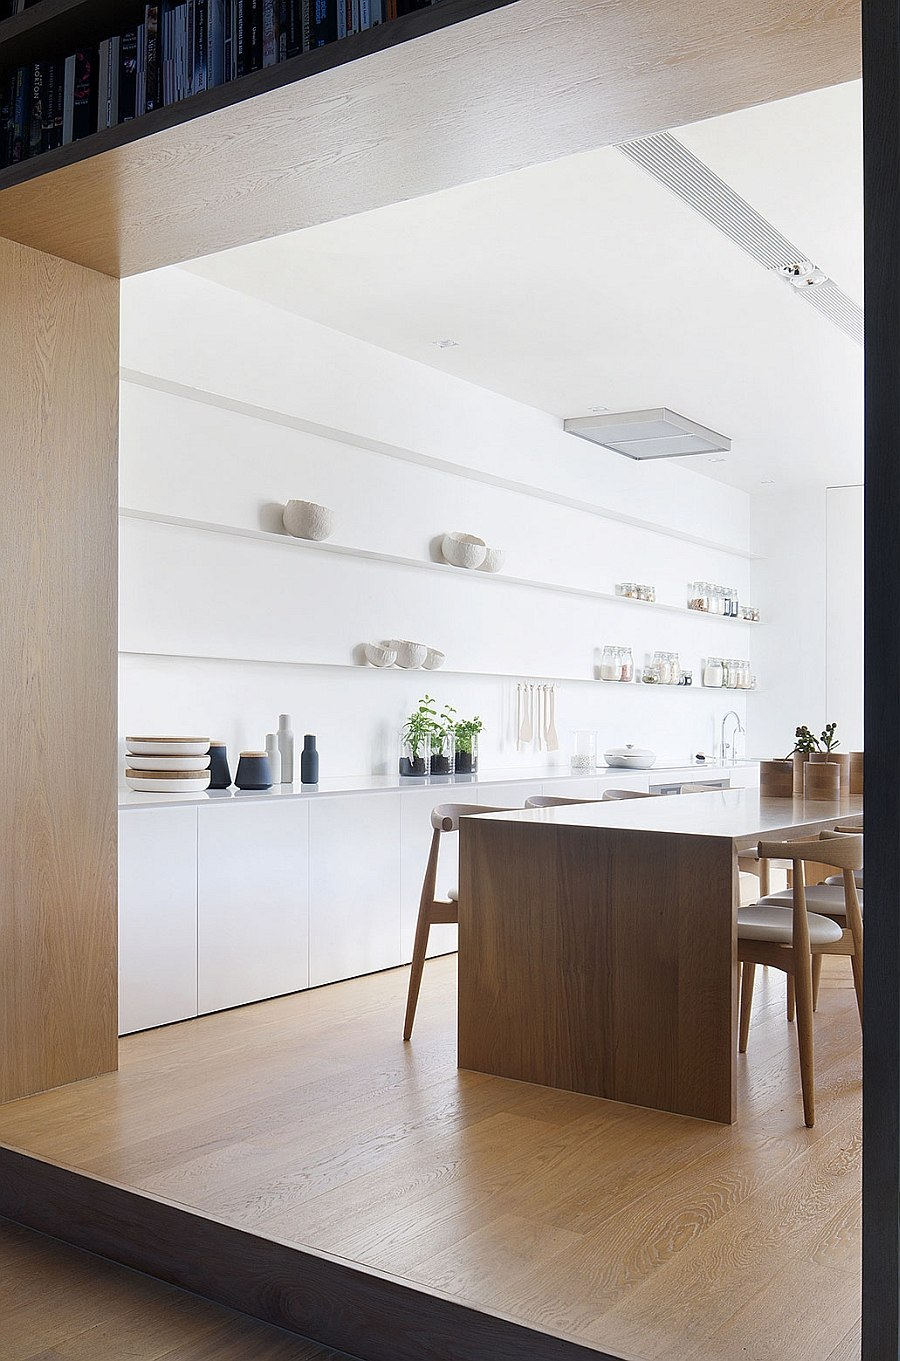 Floating shelves in the kitchen allow you to create an attractive display